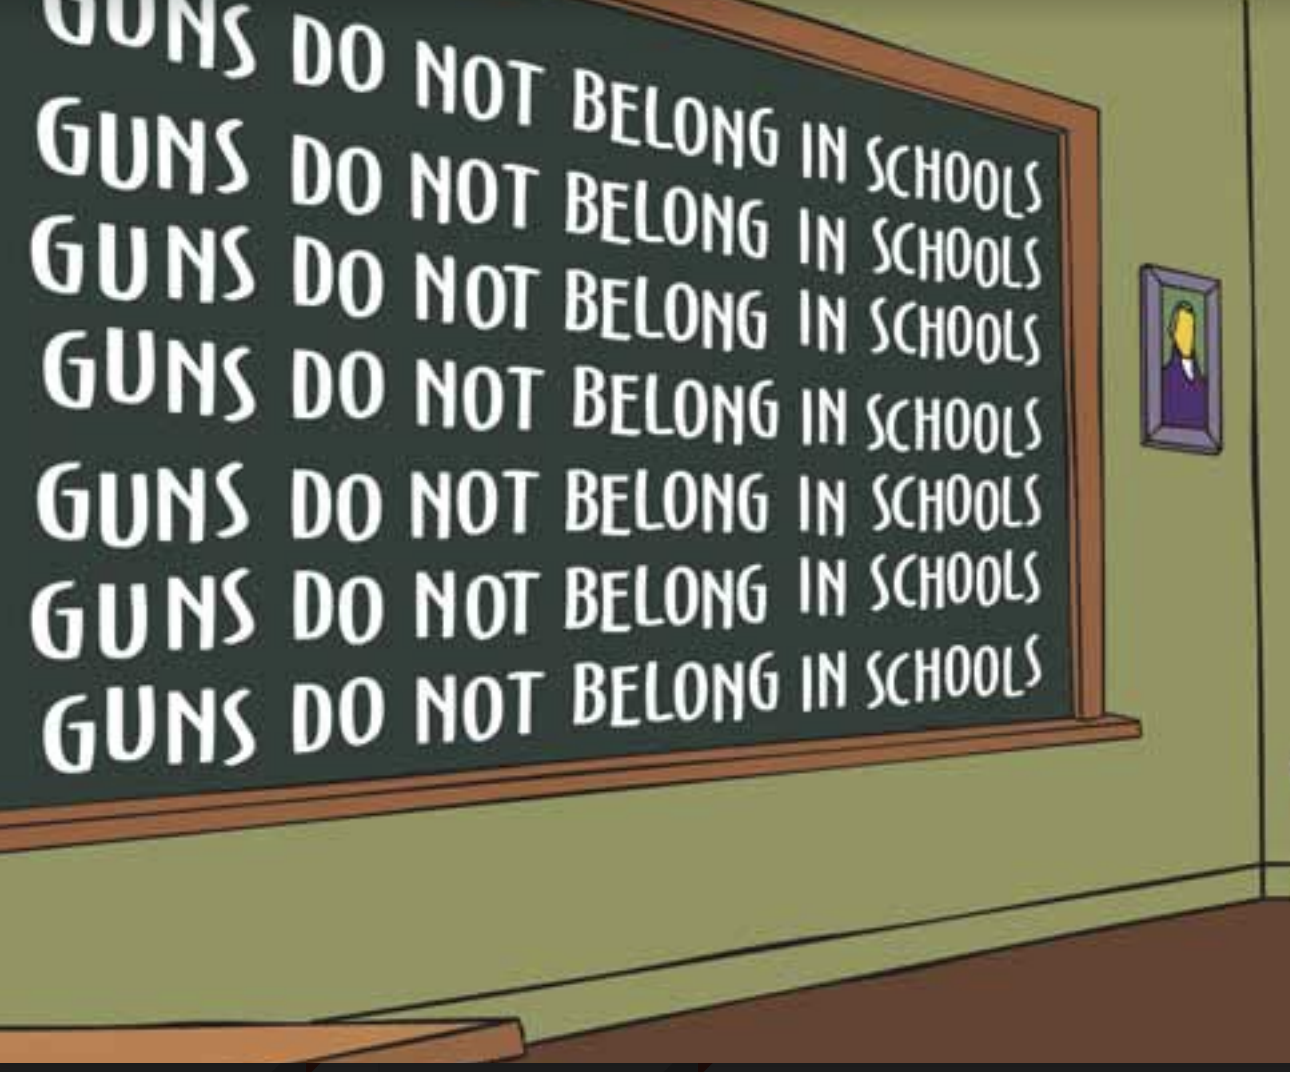 We Must Reject Guns in Schools